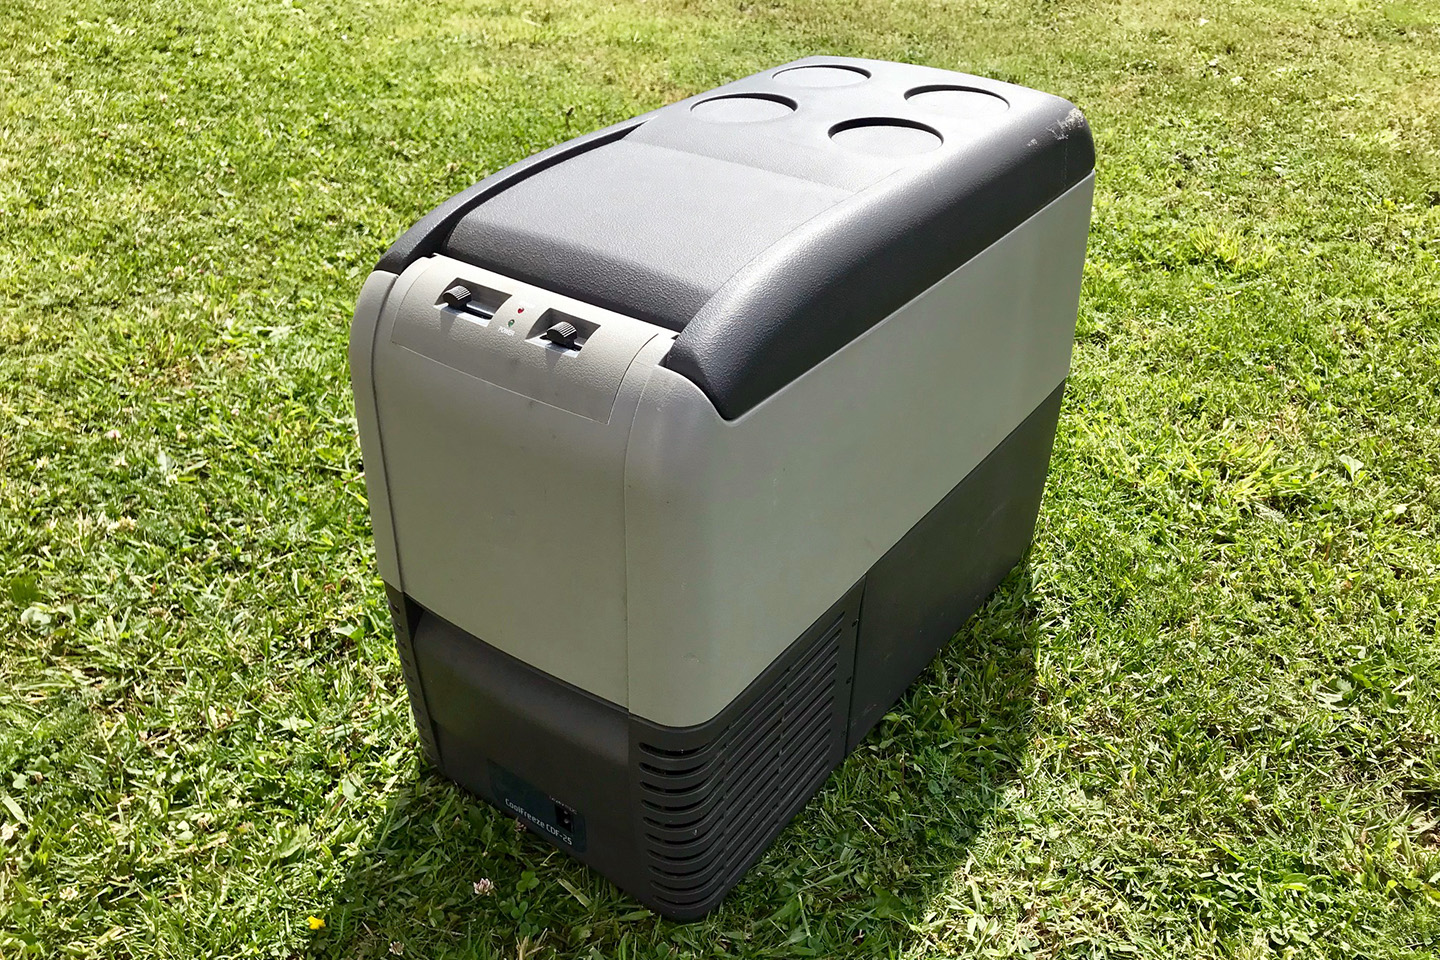 Test: Dometic Coolfreeze CF 26